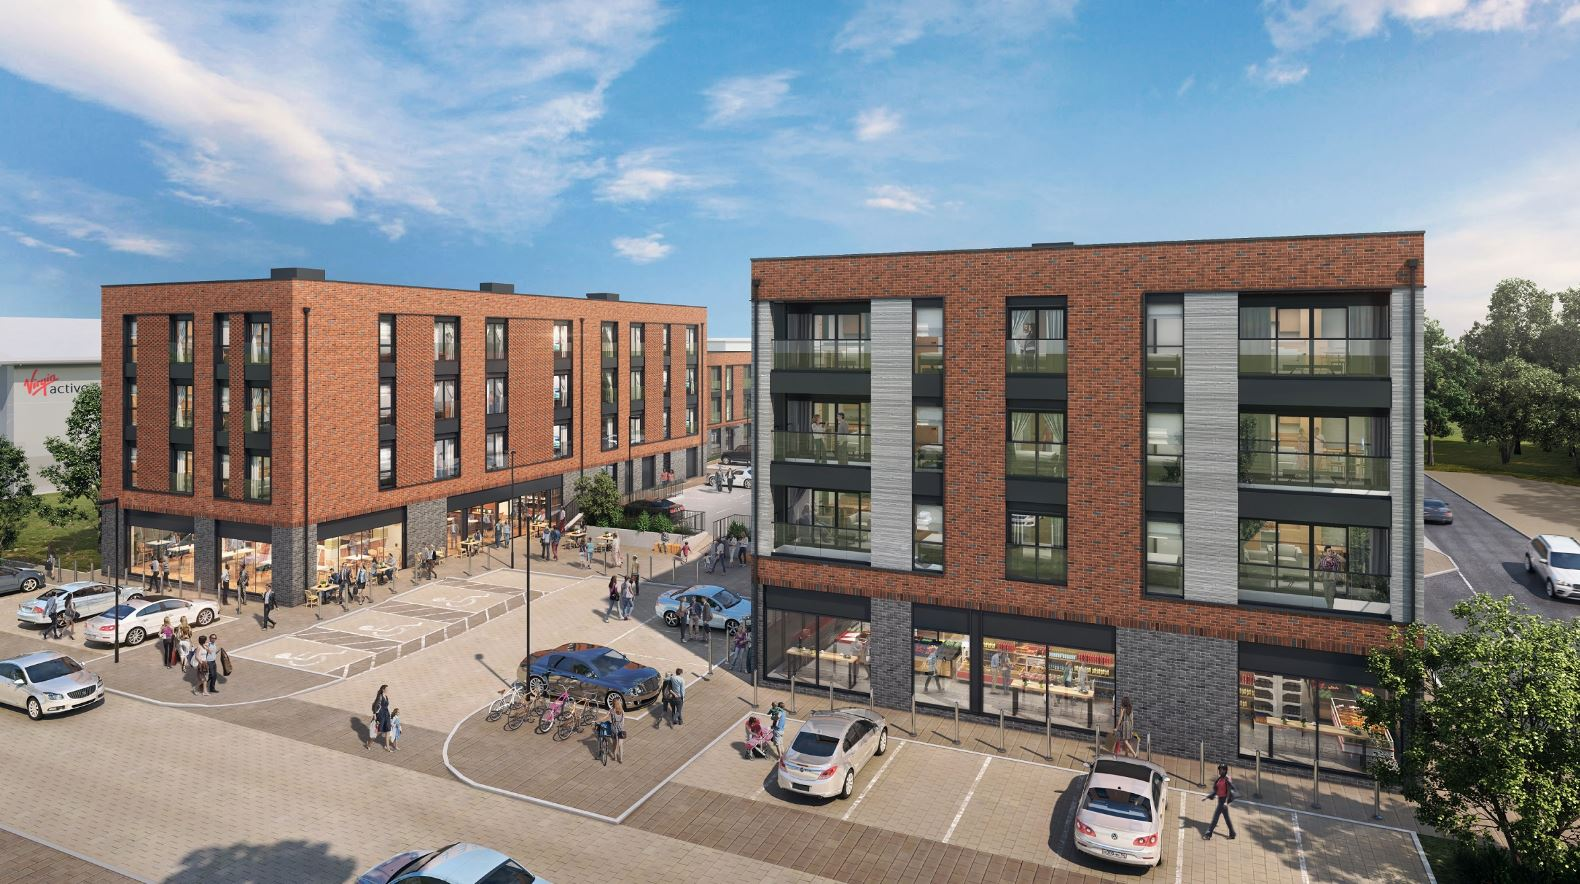 Works start on £7.5m mixed-use residential development in Solihull